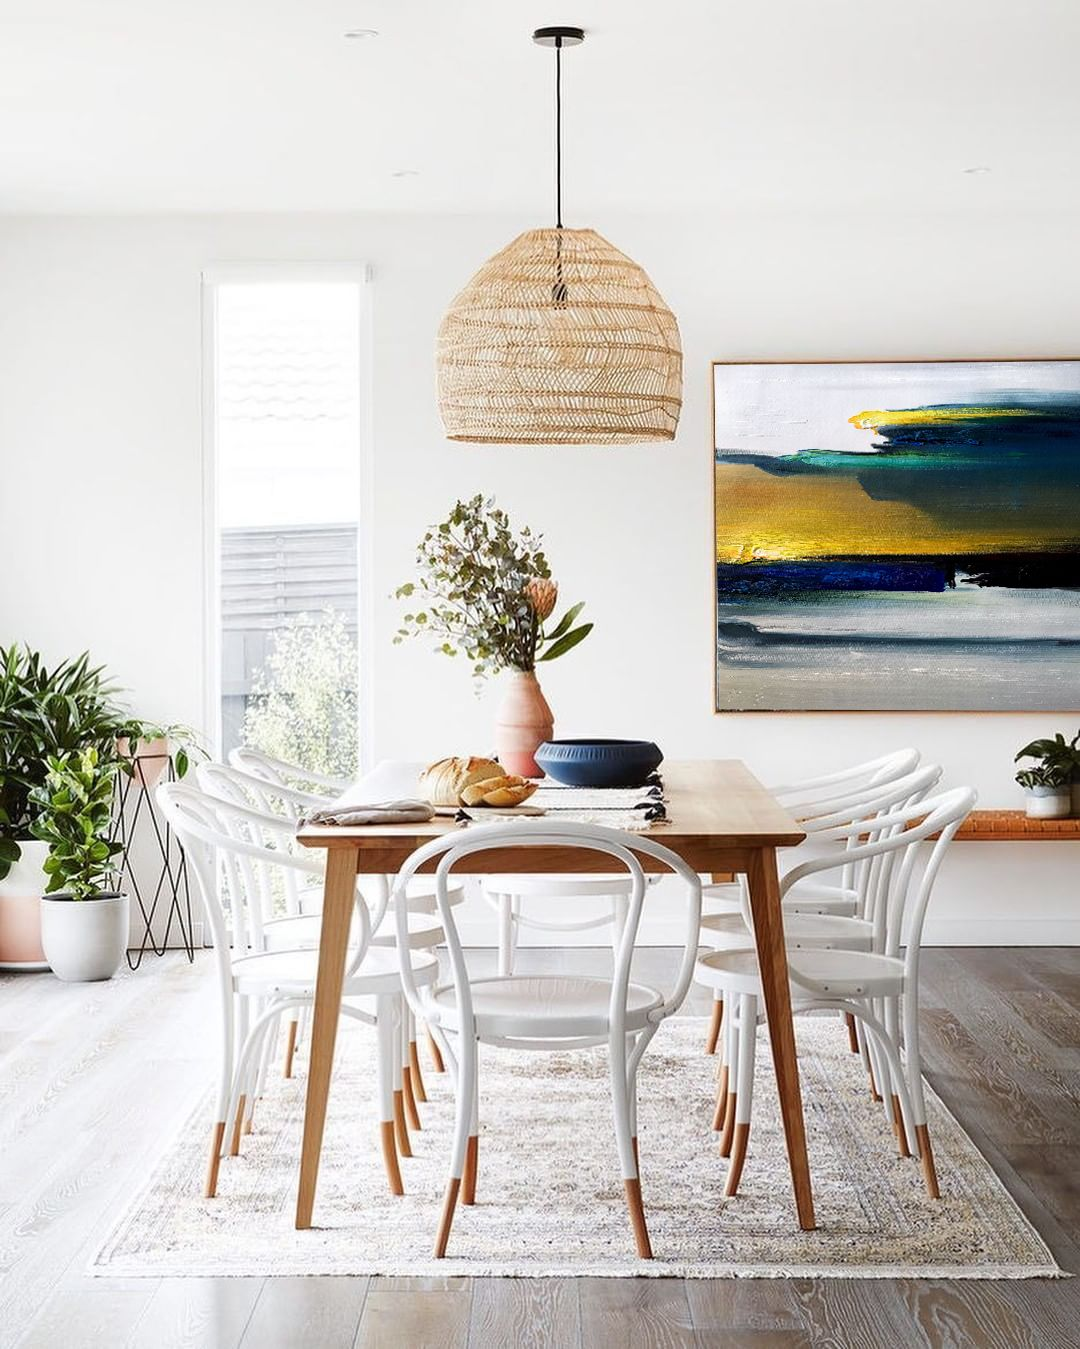 Contemporary Art Abstract Painting Original Blue Gold Painting Etsy In 2021 Scandinavian Dining Room Decor House And Home Magazine